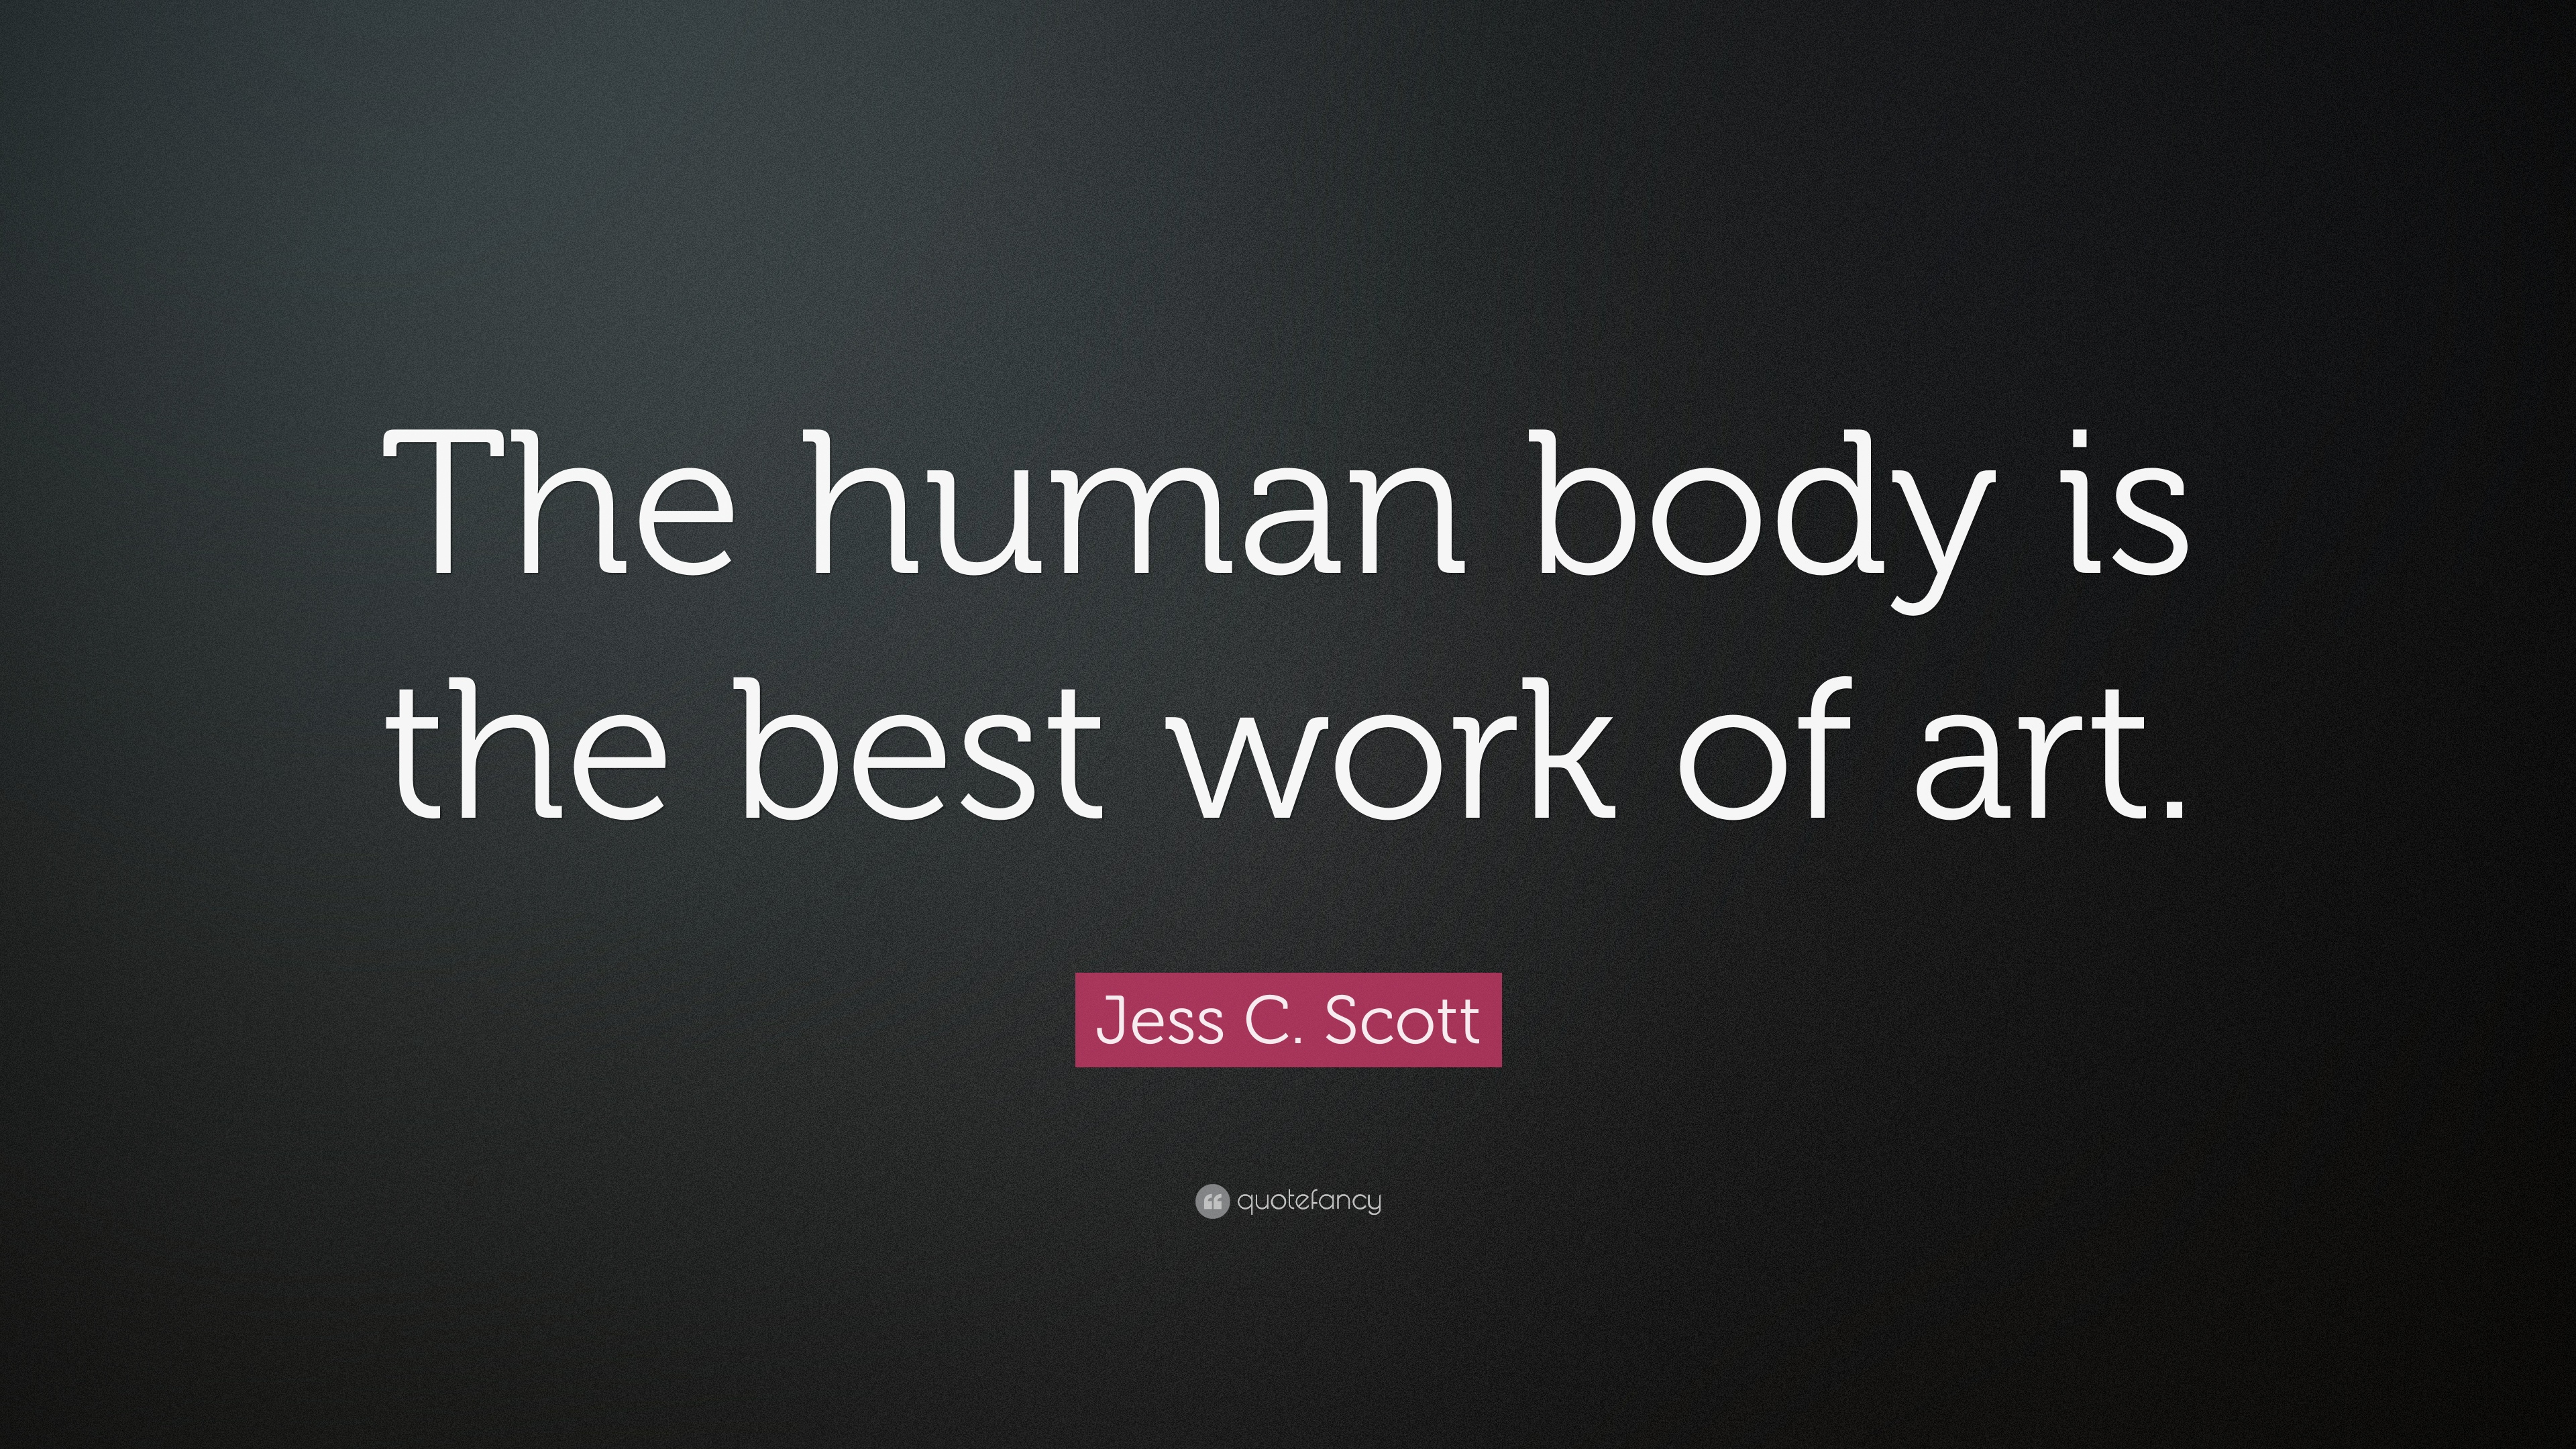 Jess C Scott Quote The Human Body Is The Best Work Of Art 13 Wallpapers Quotefancy